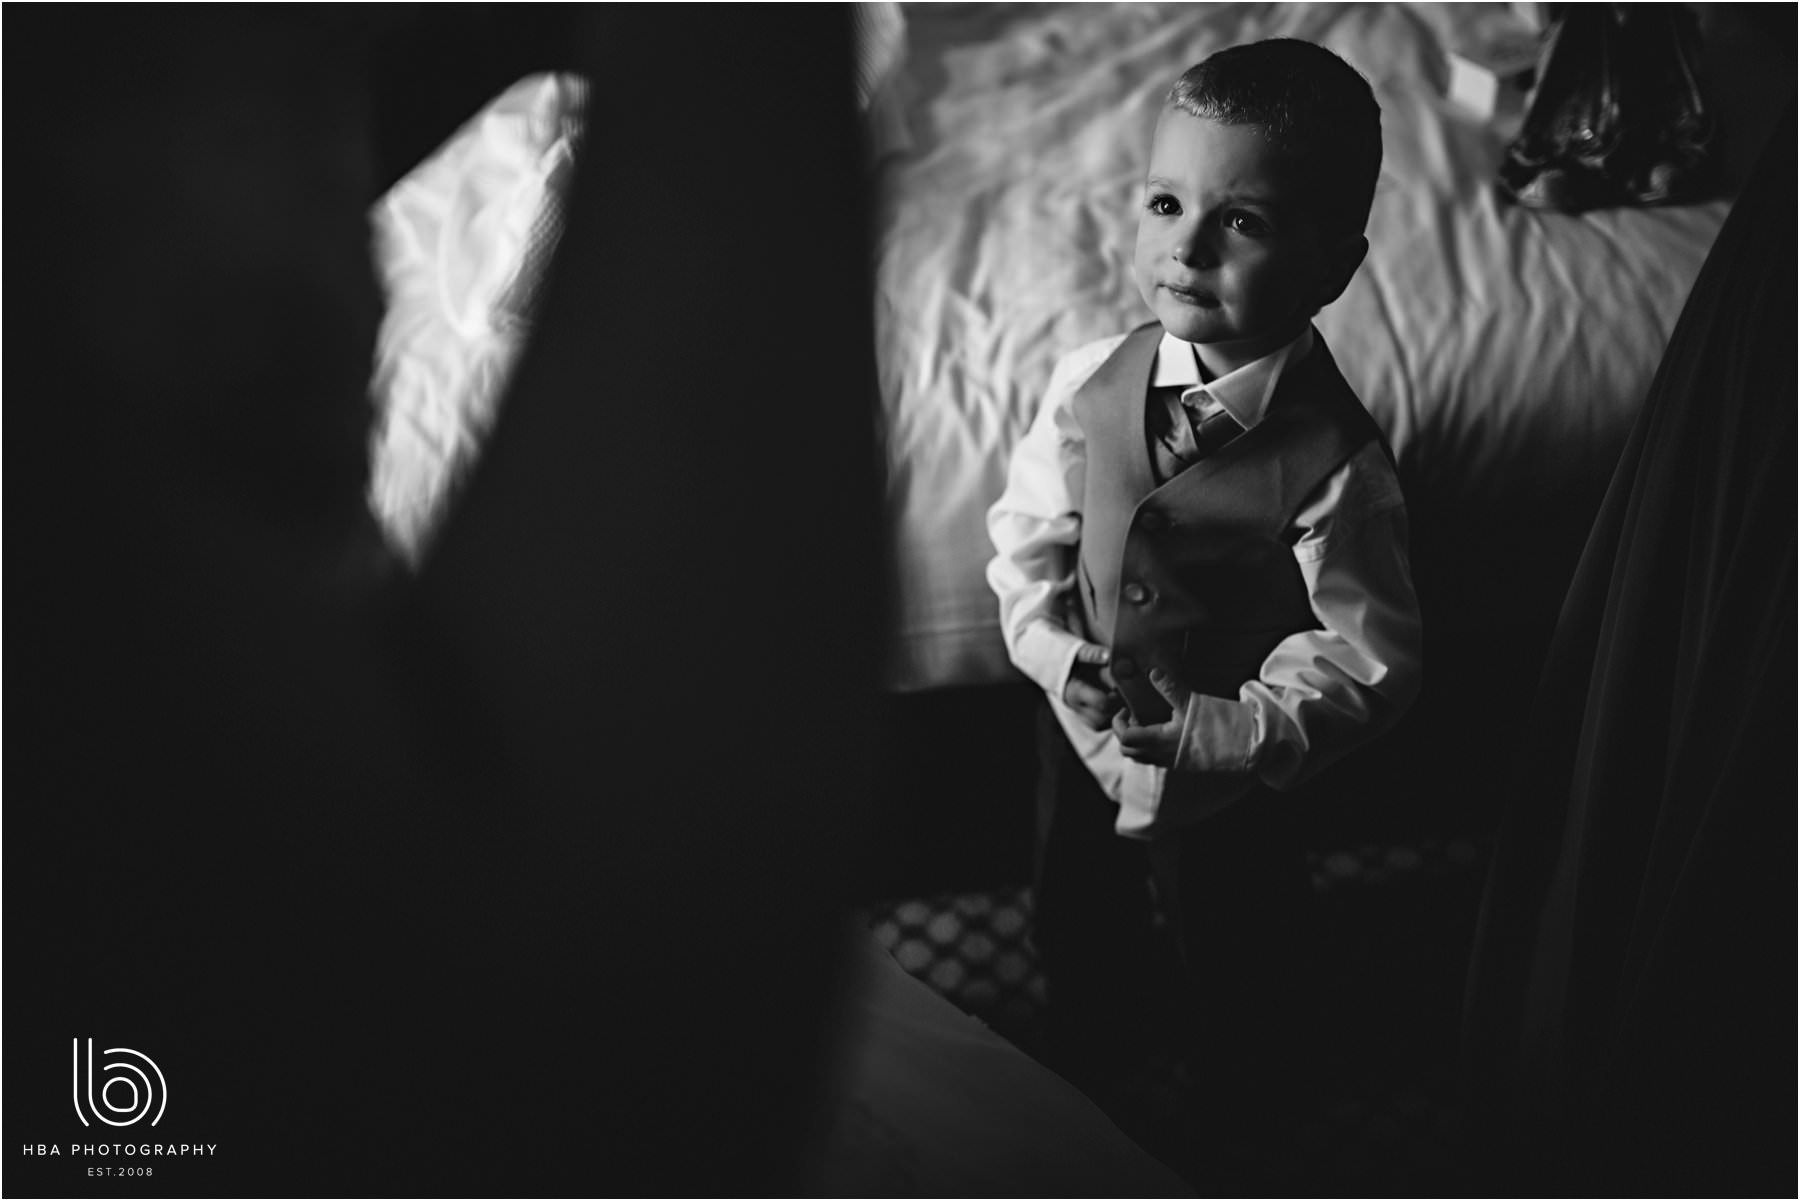 the bride's son watching his mum get ready for the wedding